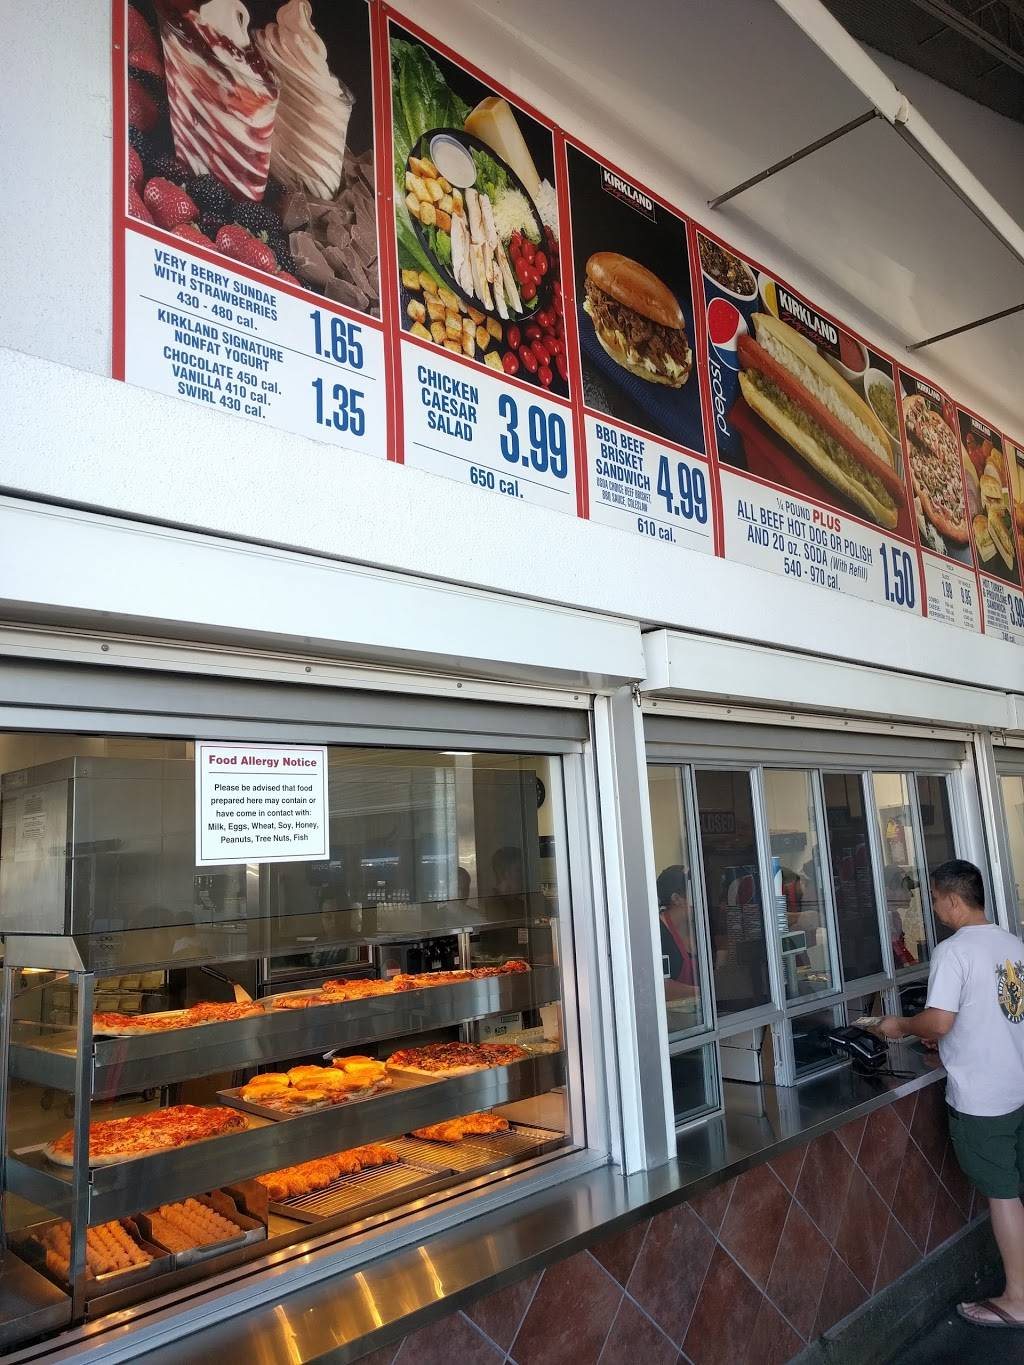 Costco Food Court | meal takeaway | 1220 W Foothill Blvd, Azusa, CA 91702, USA | 6268124578 OR +1 626-812-4578